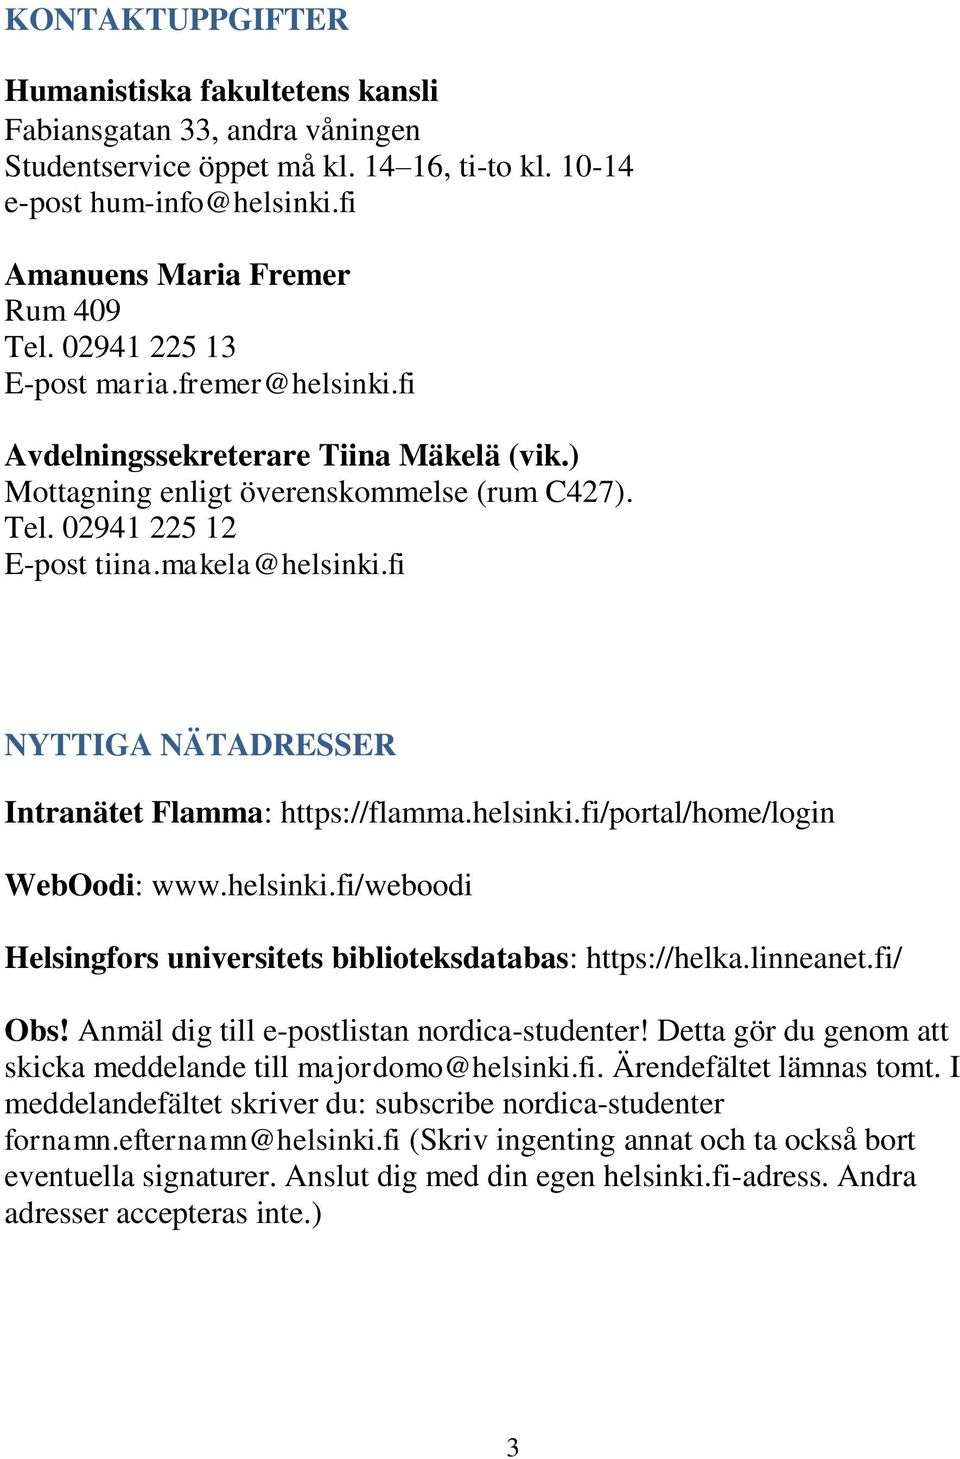 fi NYTTIGA NÄTADRESSER Intranätet Flamma: https://flamma.helsinki.fi/portal/home/login WebOodi: www.helsinki.fi/weboodi Helsingfors universitets biblioteksdatabas: https://helka.linneanet.fi/ Obs!